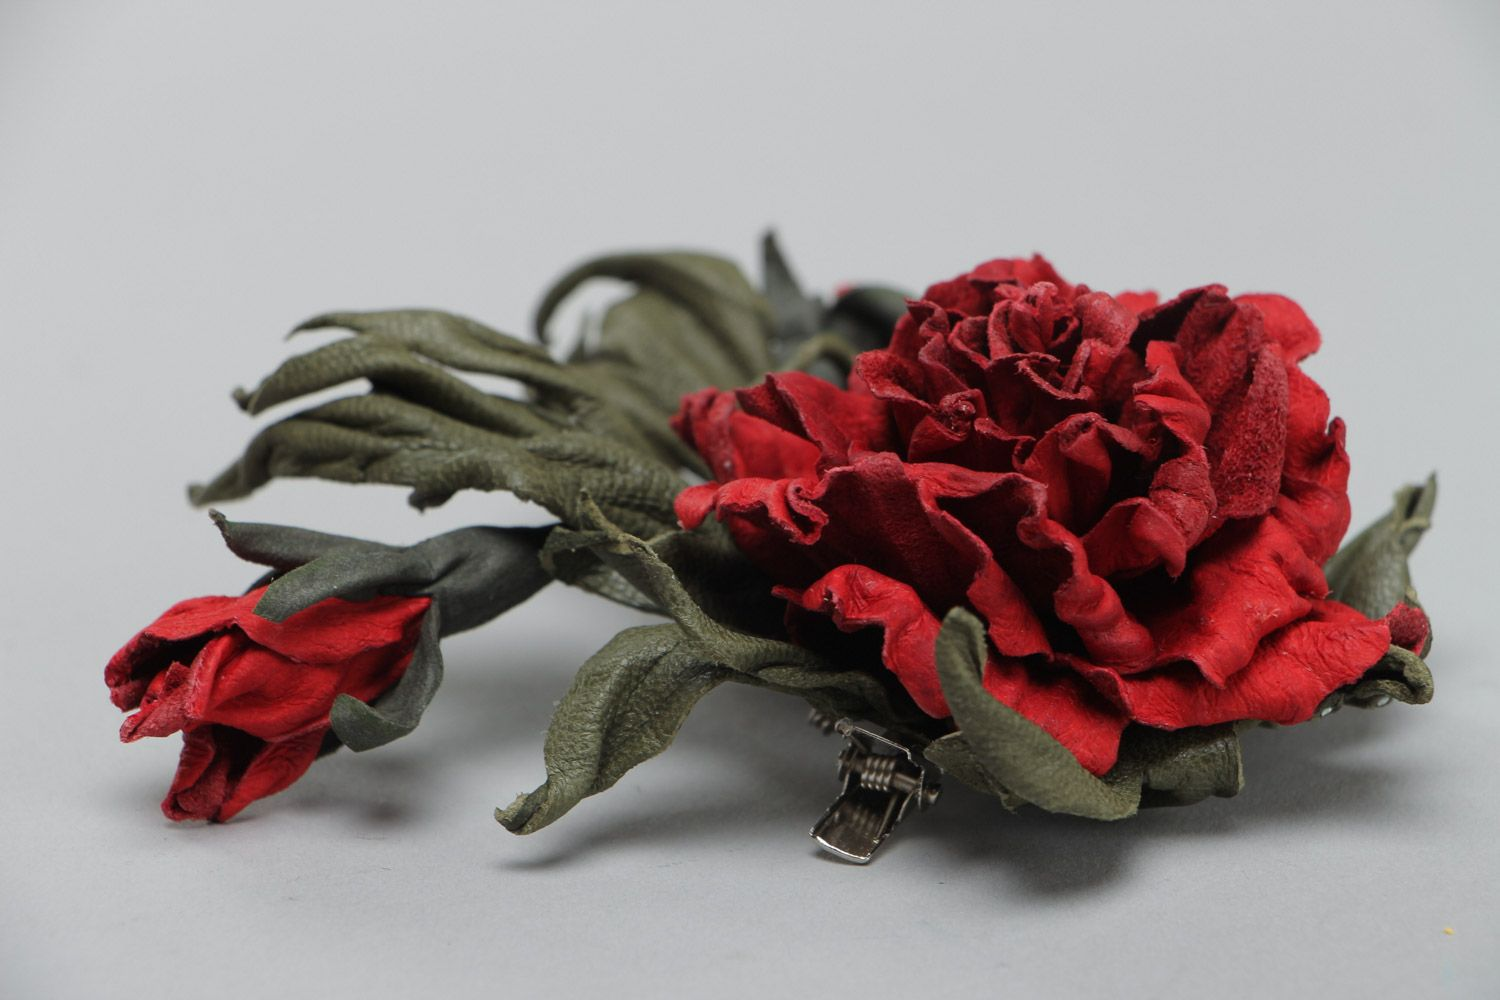 Handmade natural leather brooch with dark red volume flower for outer clothes photo 3